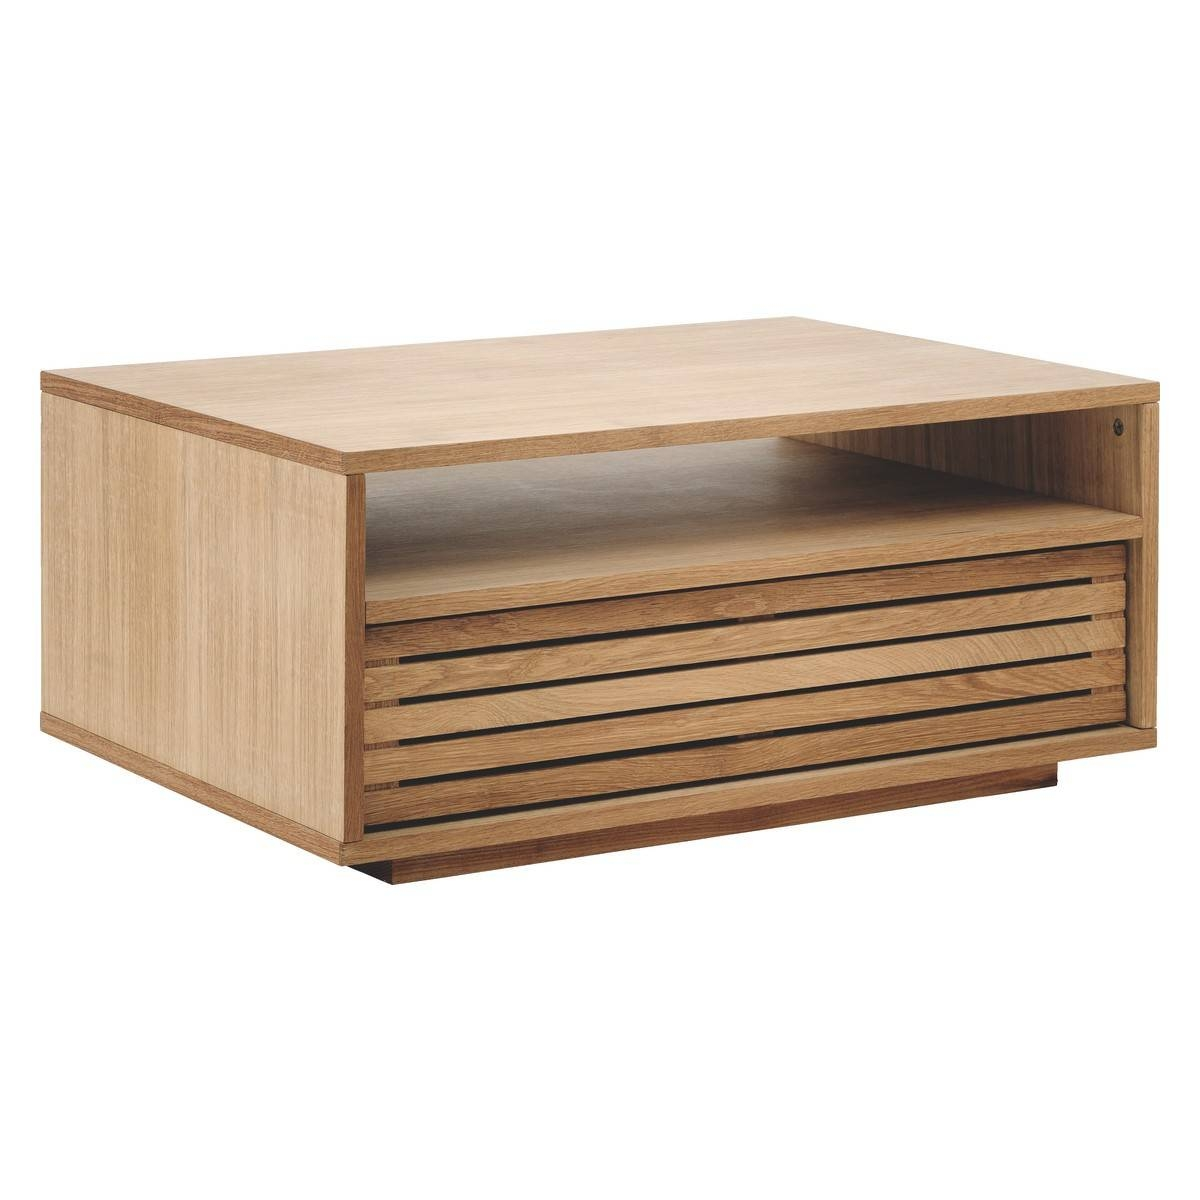 Max Oak Coffee Table With Storage | Buy Now At Habitat Uk with regard to Oak Coffee Tables With Storage (Image 8 of 15)